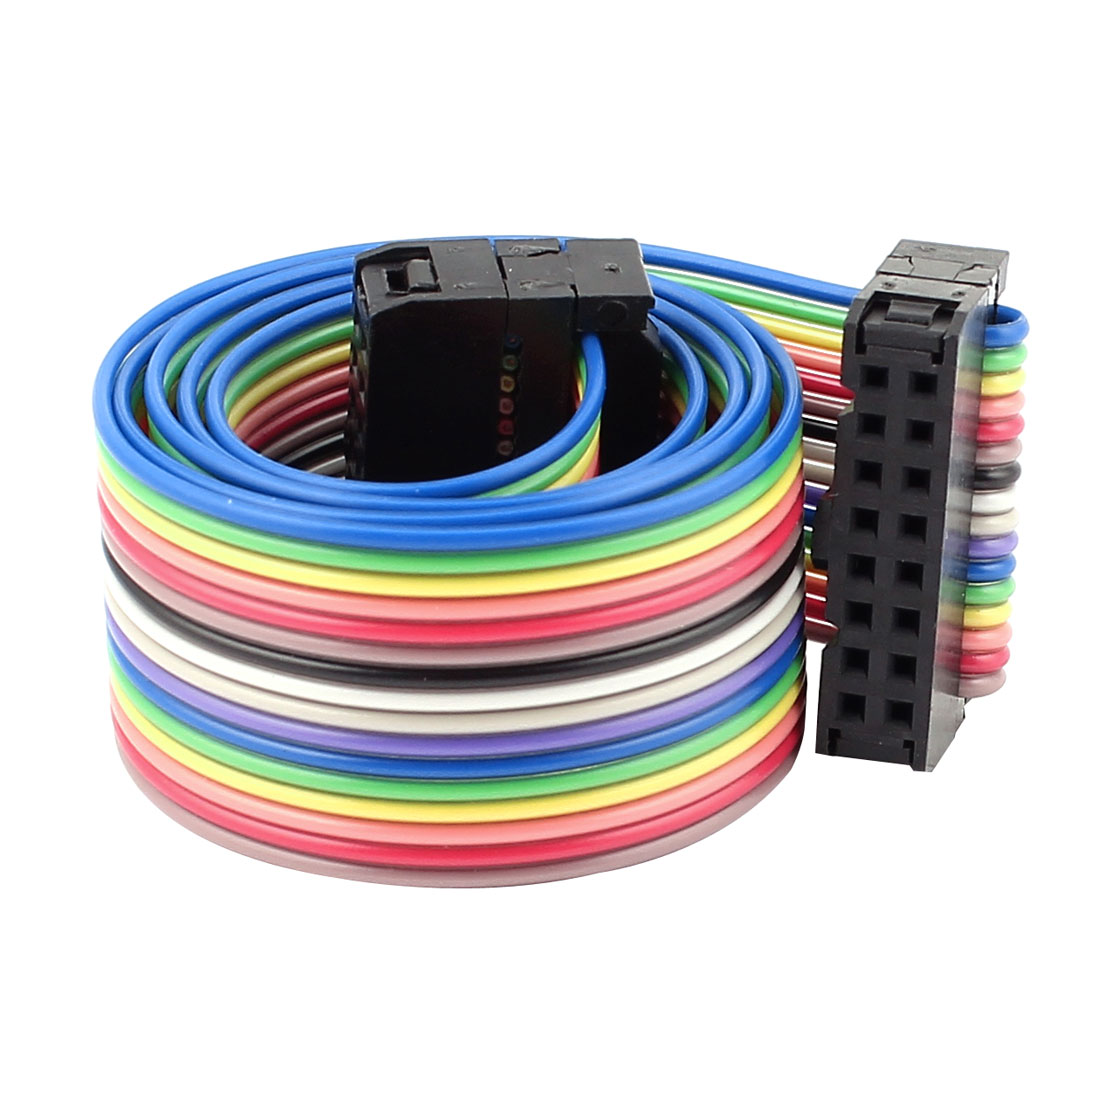 2.54mm Pitch 16Pin 16 Way F/F Connector IDC Flat Rainbow Ribbon Cable 48cm 1.6ft